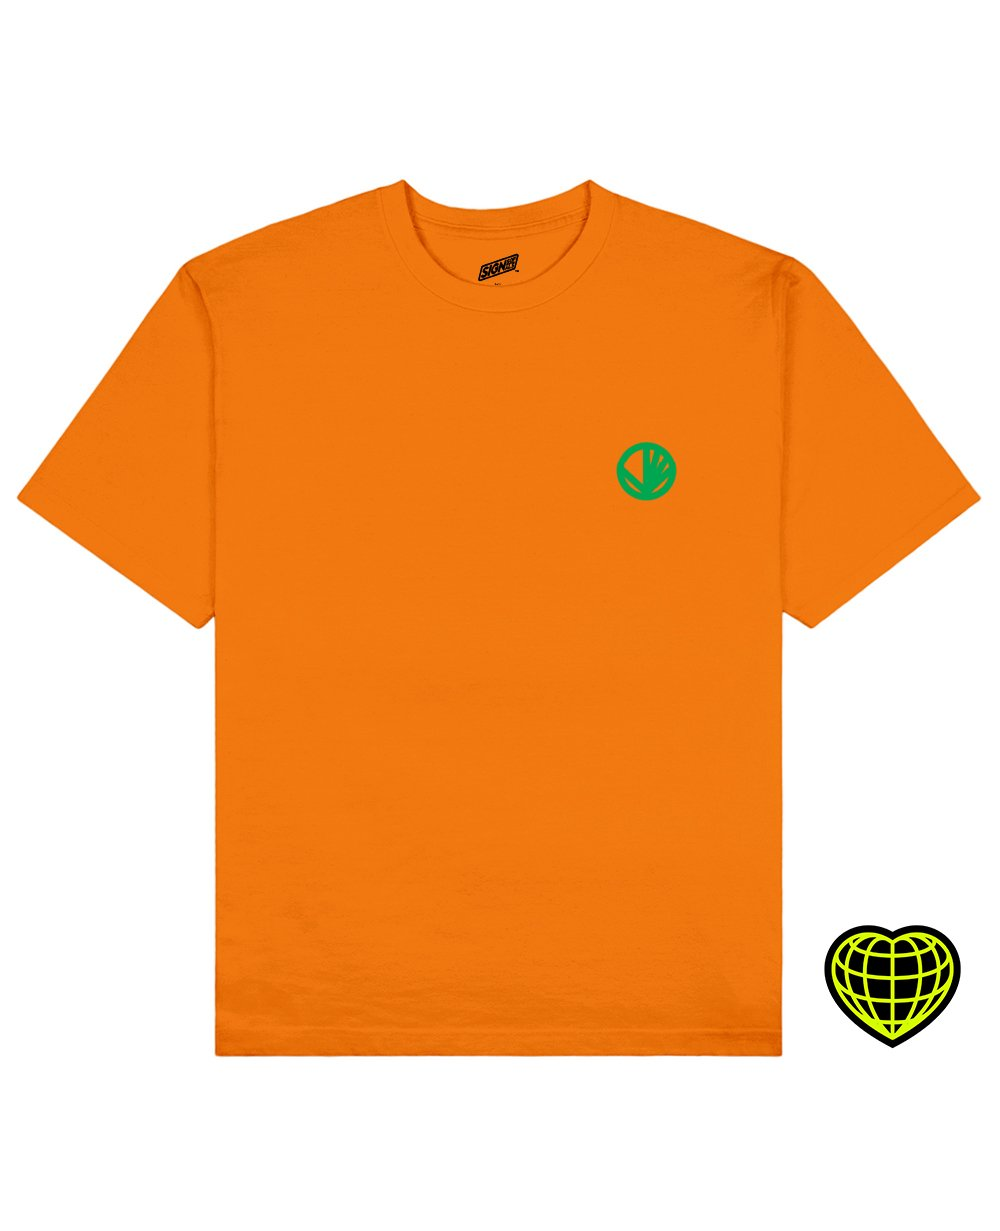 Circle with beams Print T-shirt in Orange - T-shirts - Signs of Signals - BRANMA